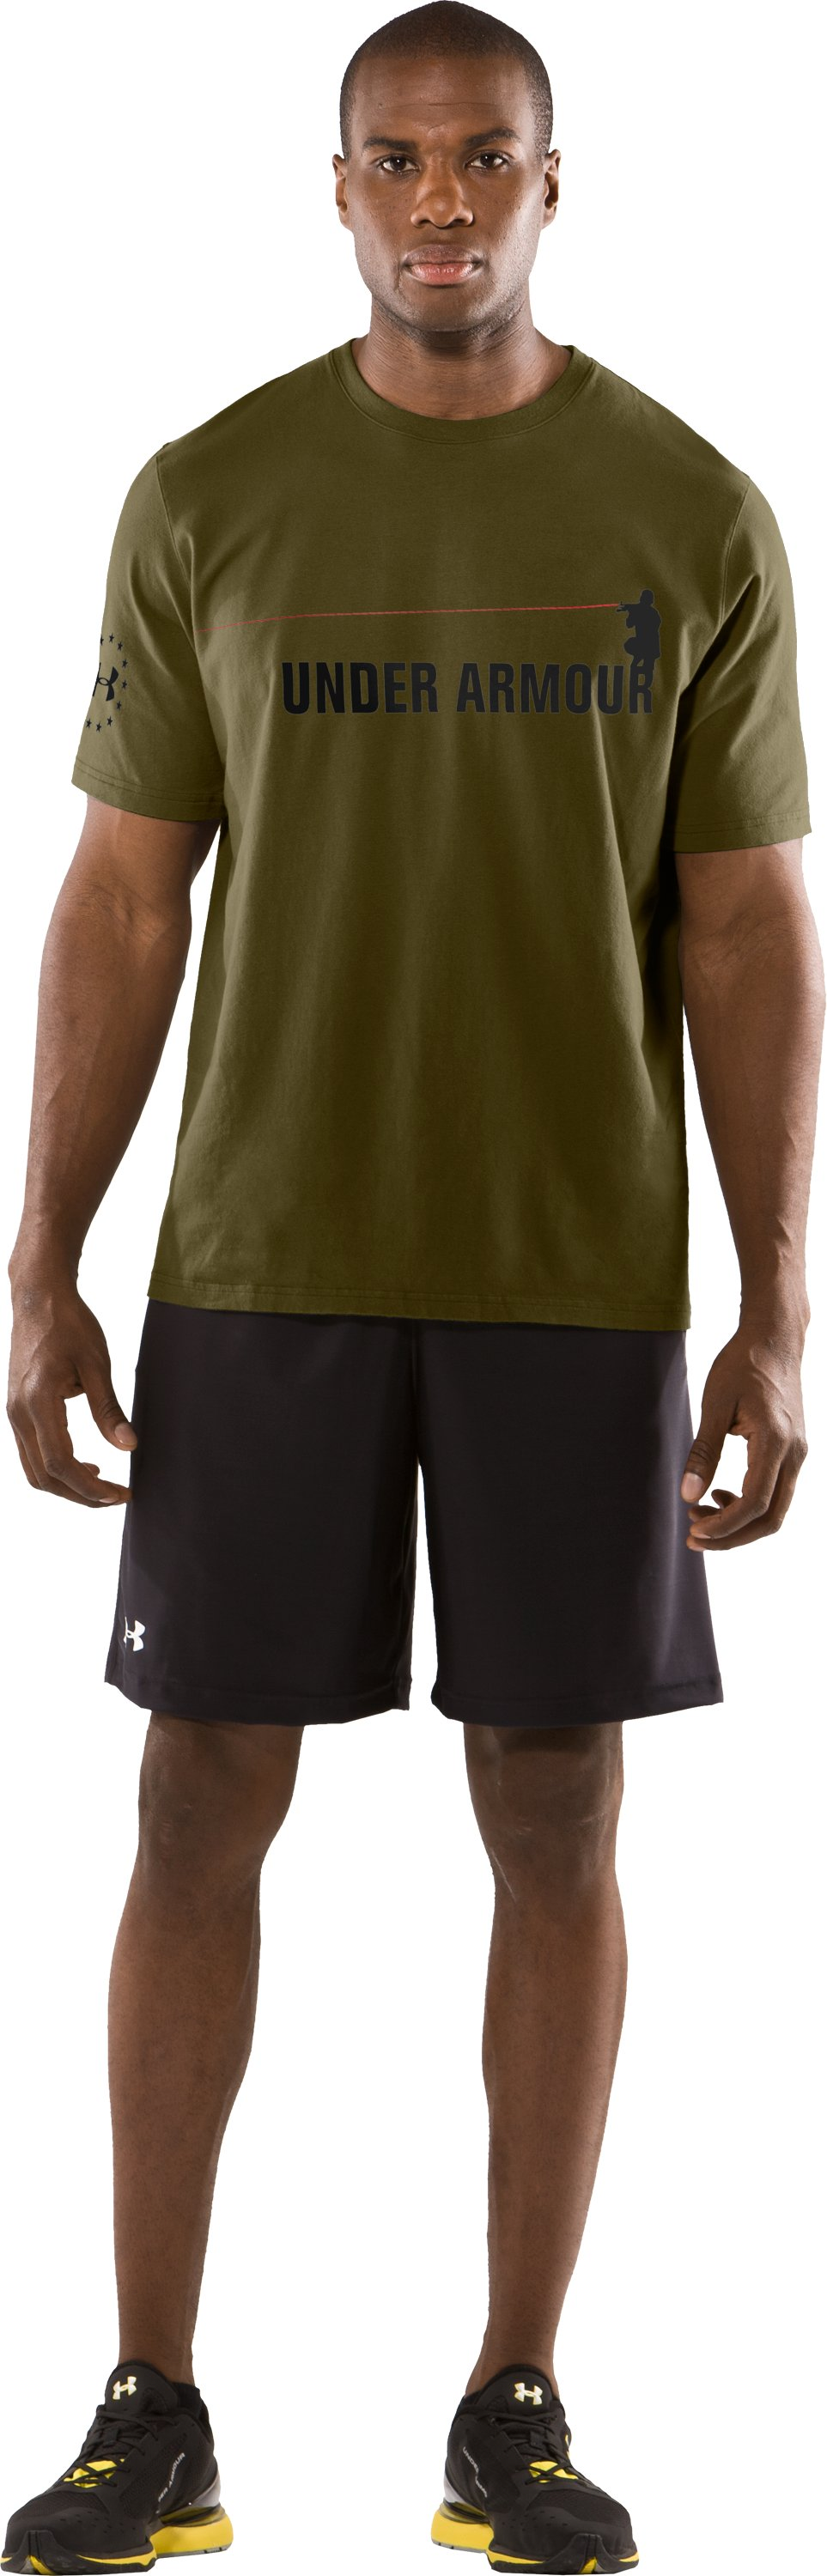 Men's UA Laser Sight Short Sleeve T-Shirt, Marine OD Green, zoomed image